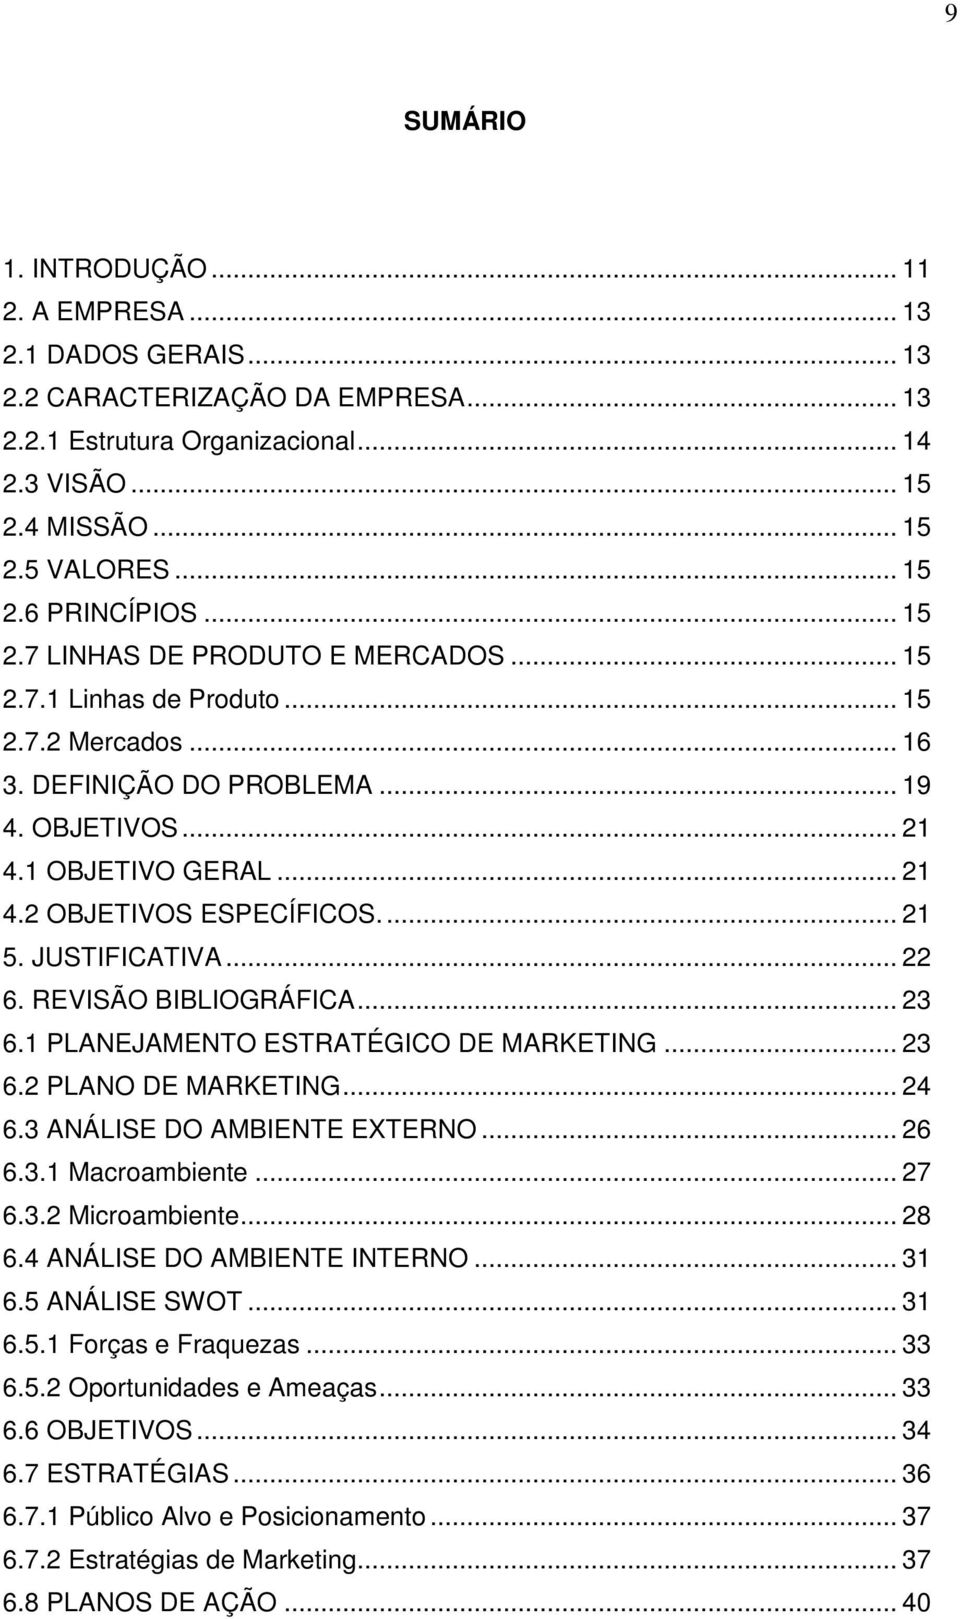 .. 21 5. JUSTIFICATIVA... 22 6. REVISÃO BIBLIOGRÁFICA... 23 6.1 PLANEJAMENTO ESTRATÉGICO DE MARKETING... 23 6.2 PLANO DE MARKETING... 24 6.3 ANÁLISE DO AMBIENTE EXTERNO... 26 6.3.1 Macroambiente.